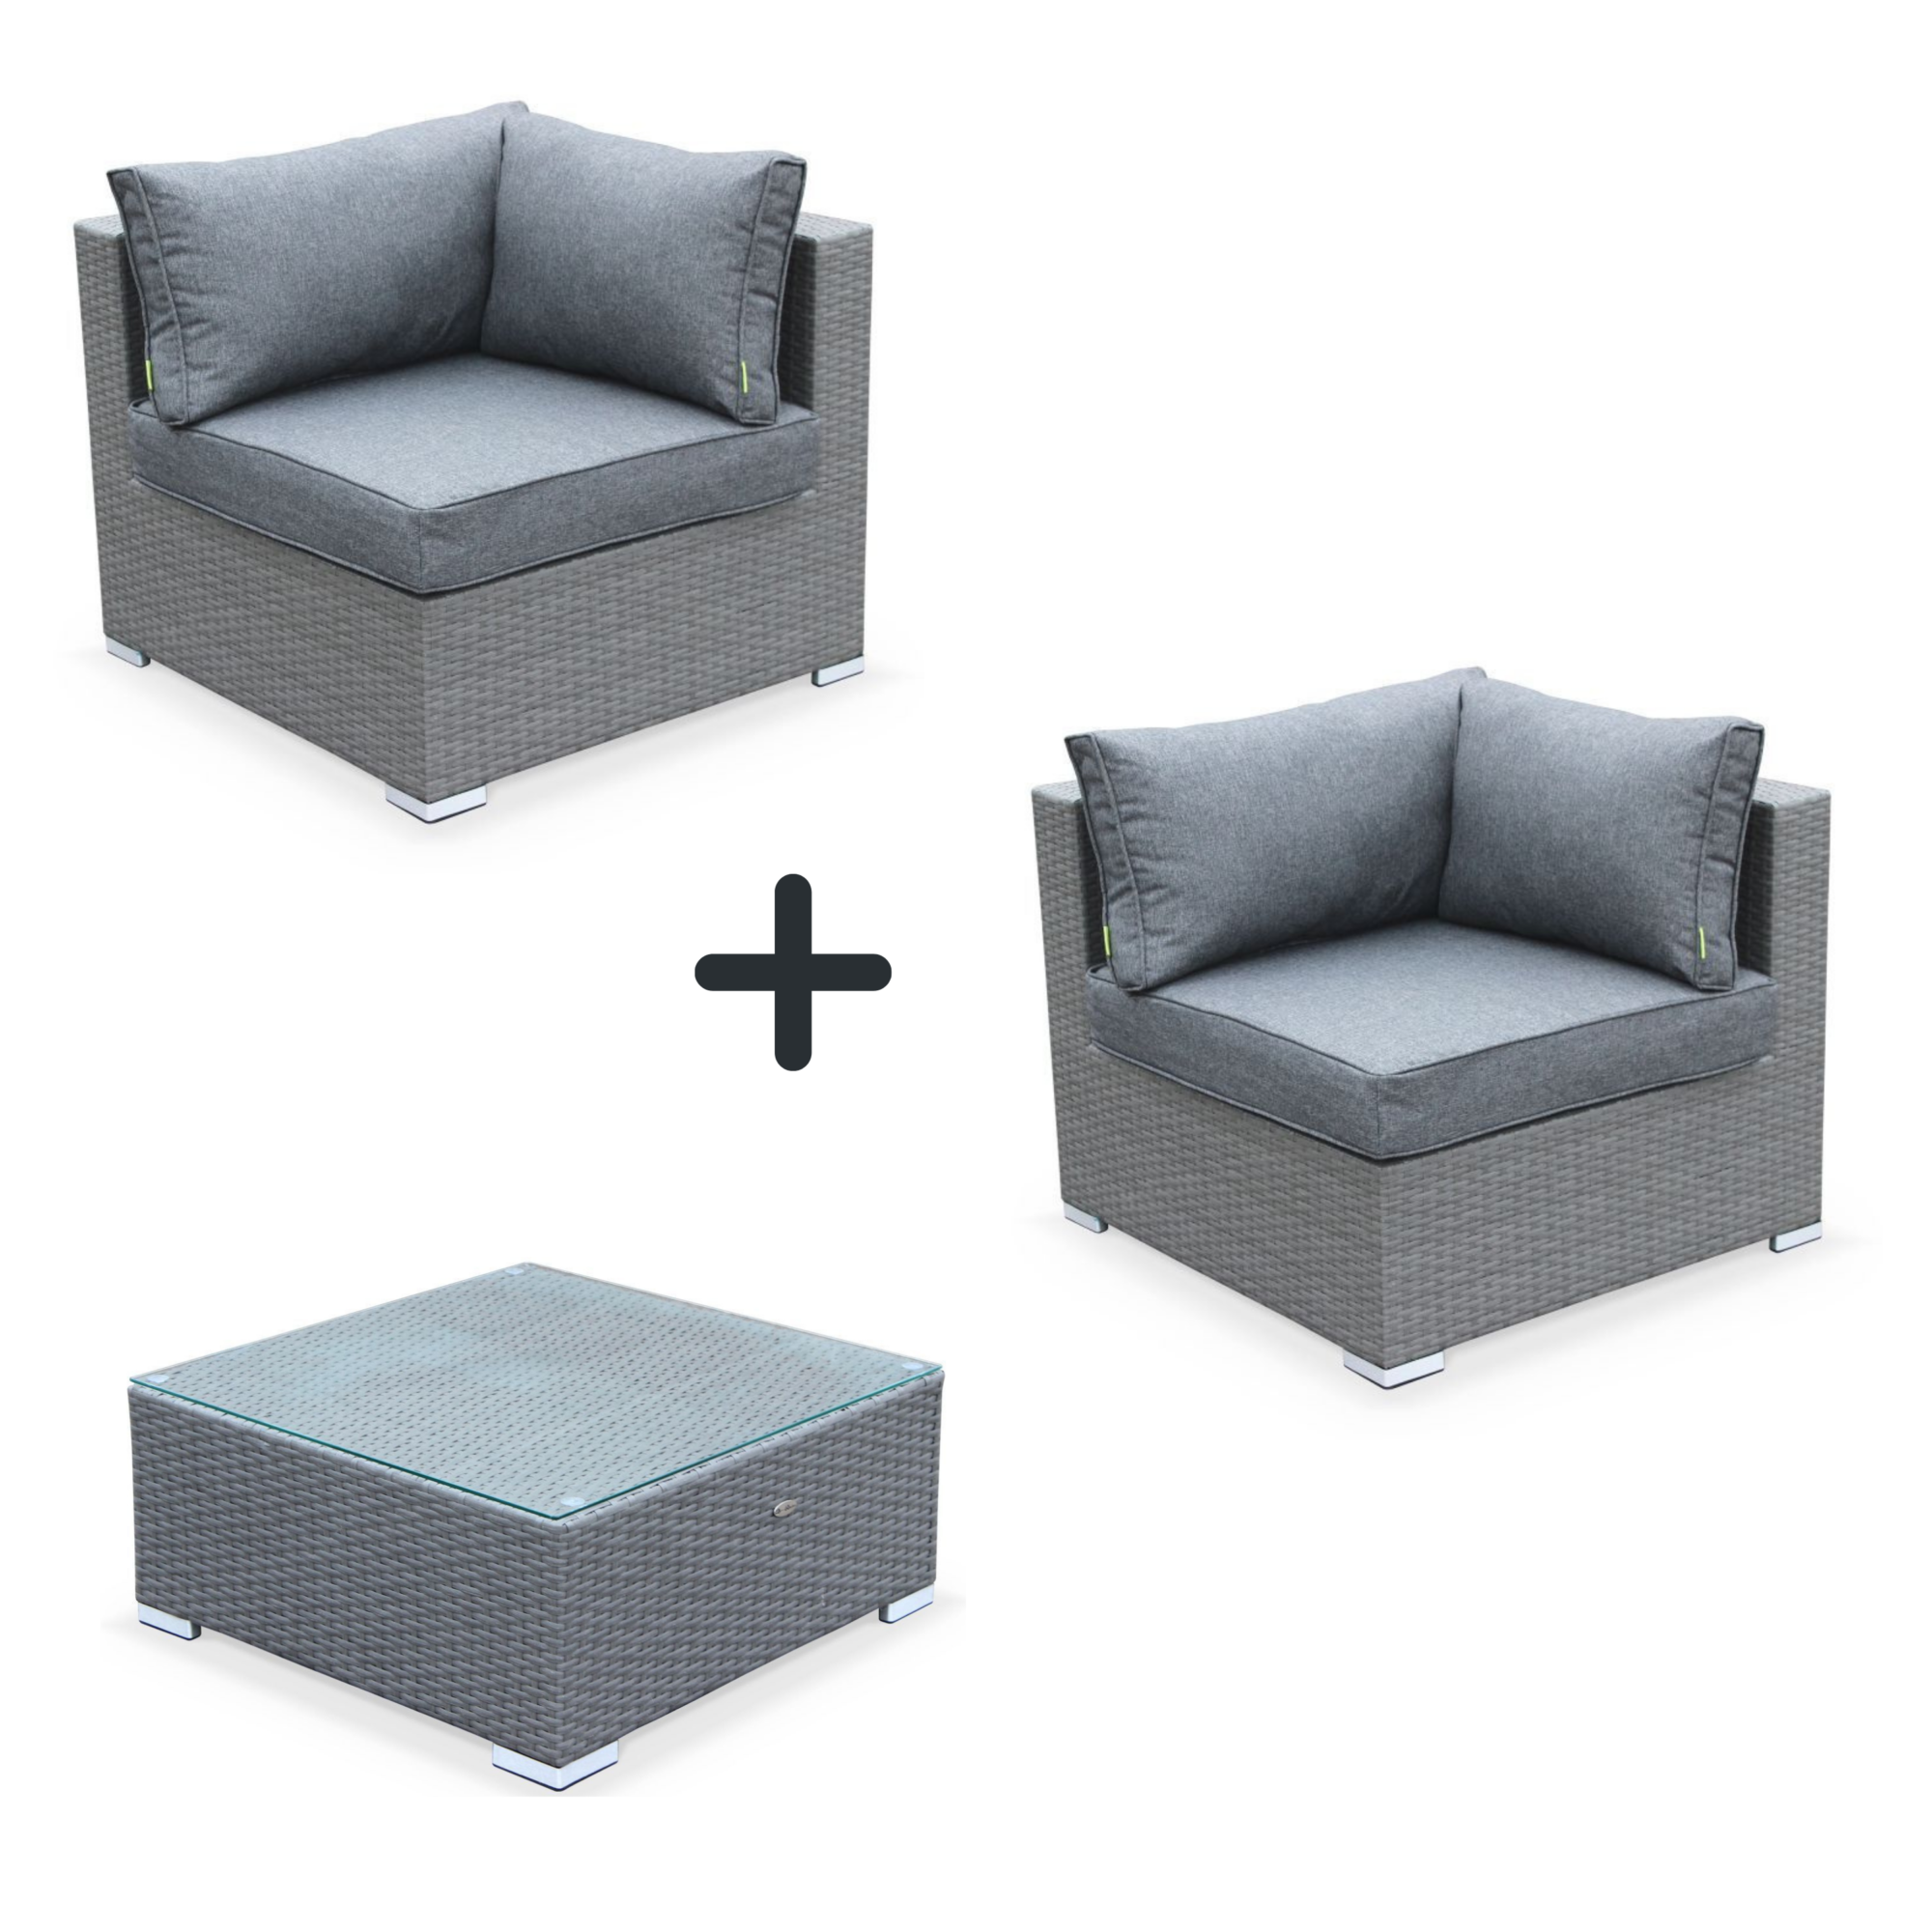 Outdoor lounge 2 seats with table grey/grey